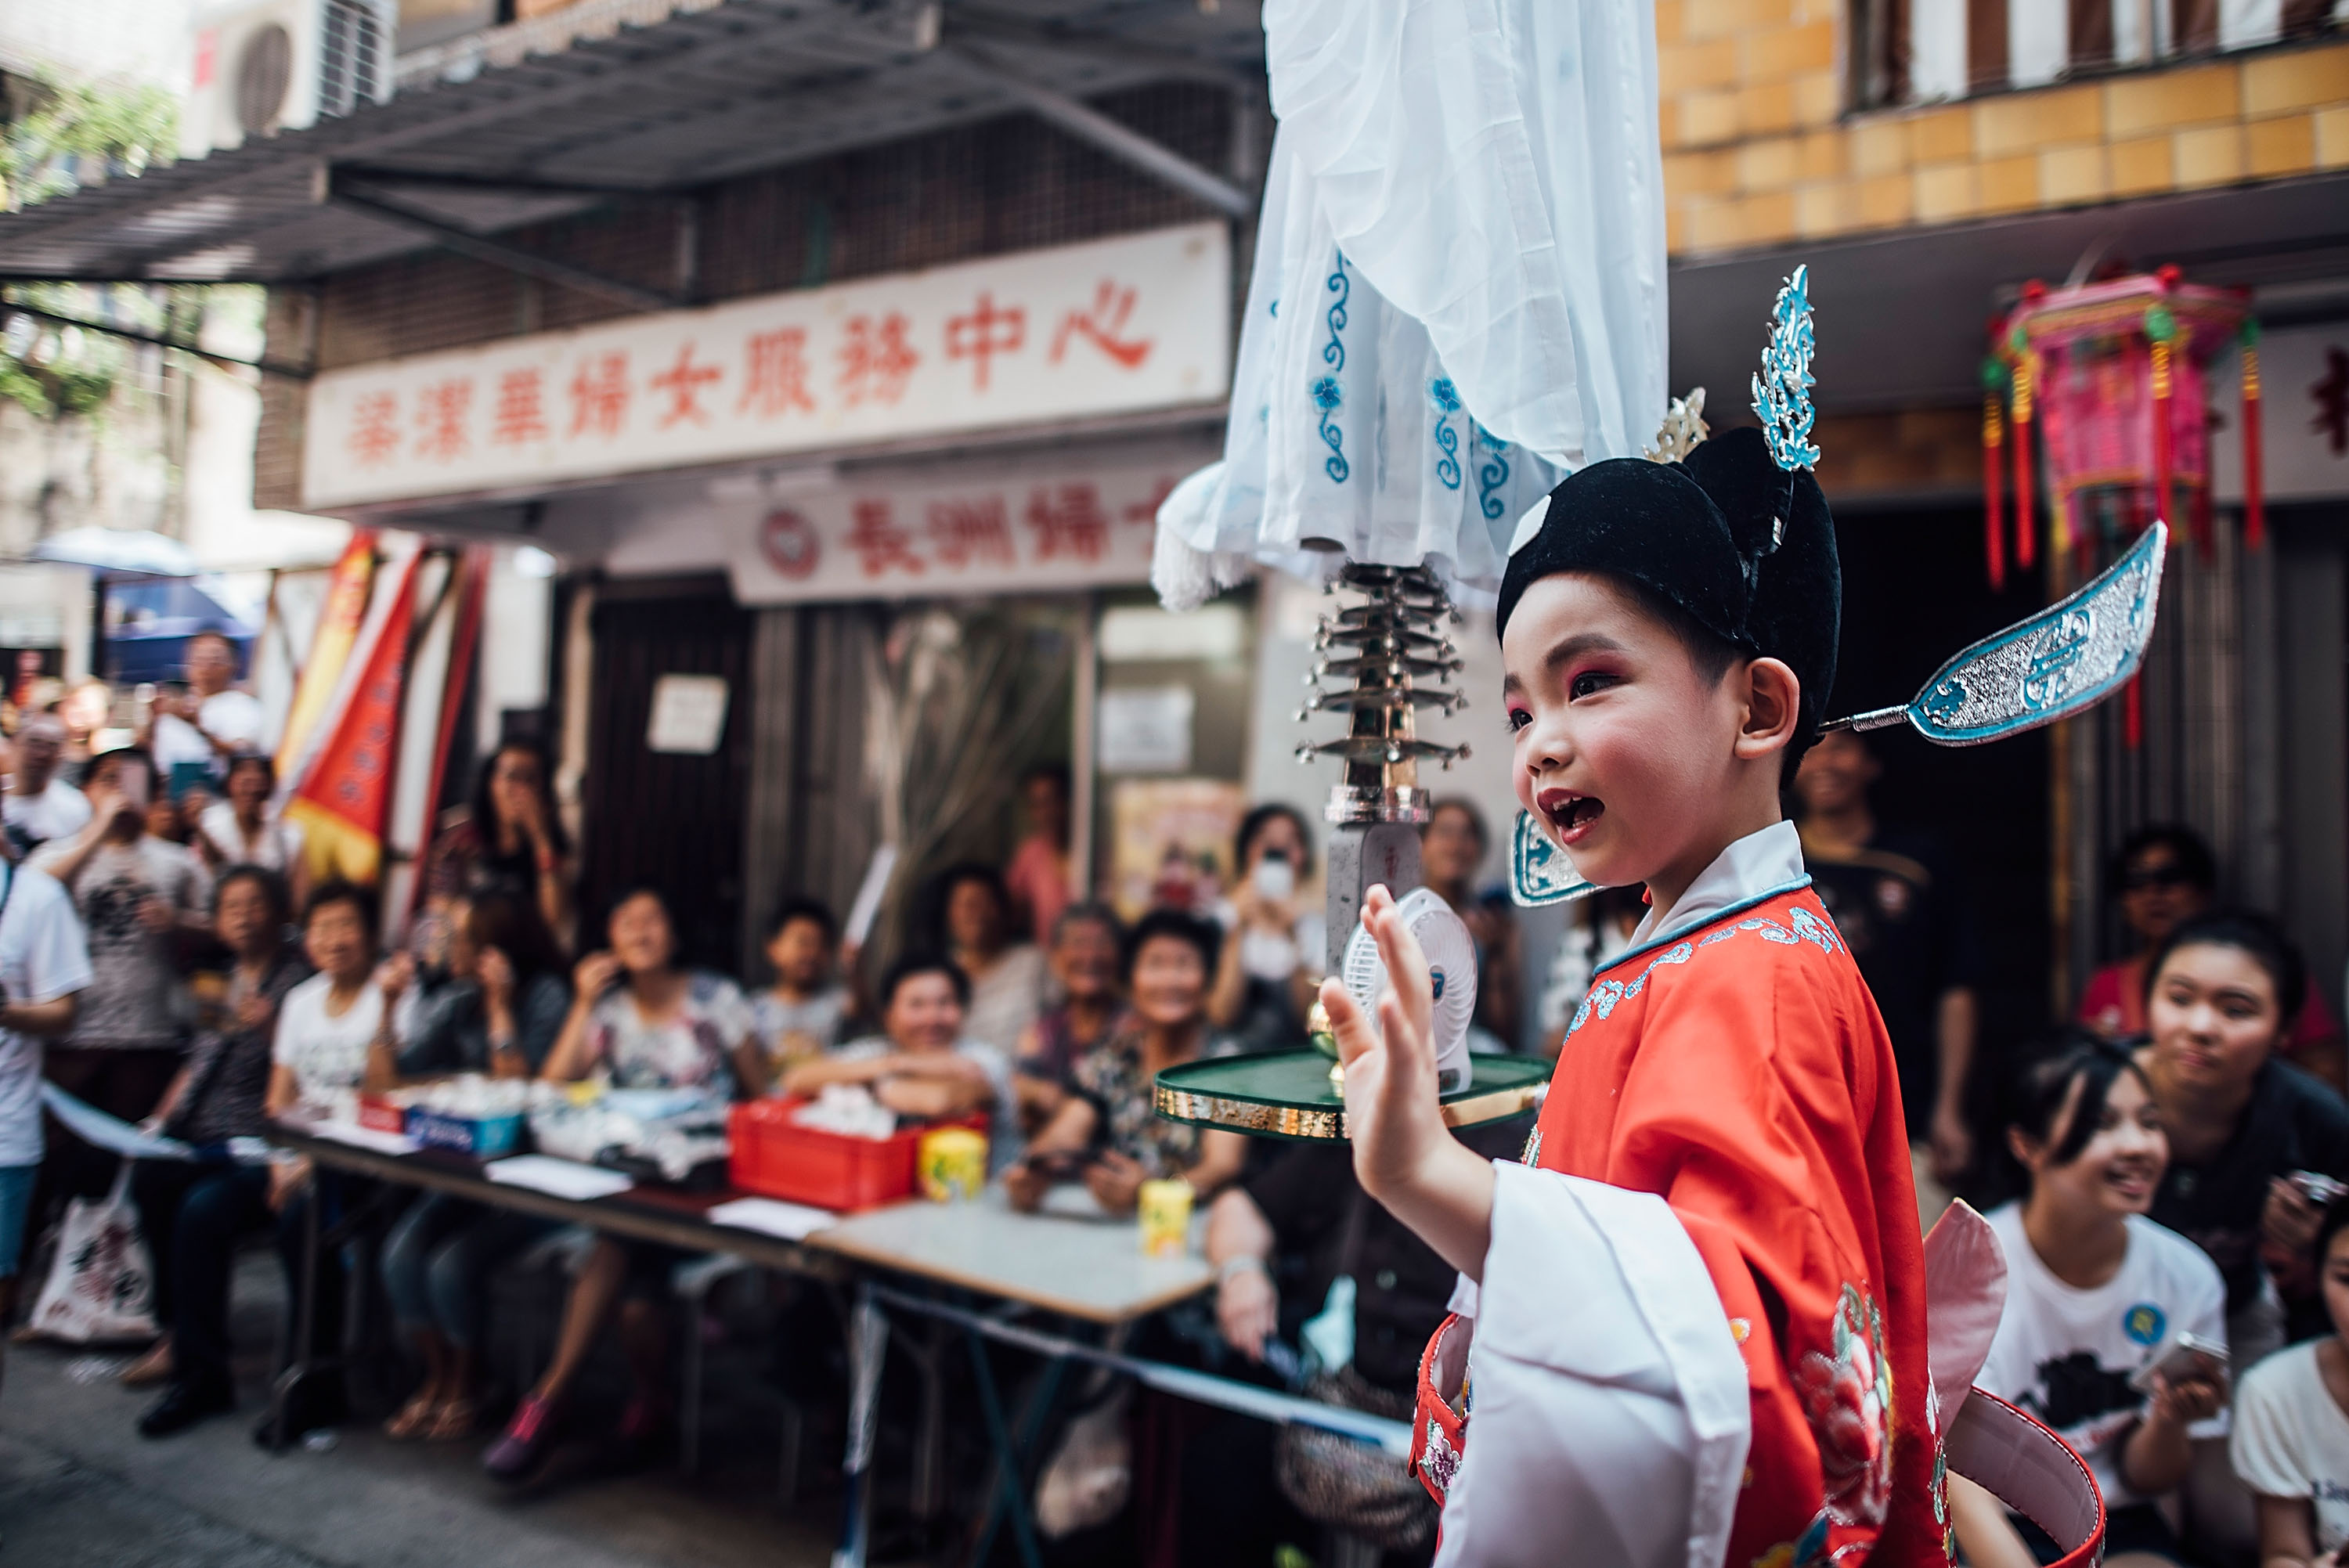 HONG KONG - MAY 25:  A child dressed in costume performs on a float during Piu Sik (Floating Colours) Parade at Bun Festival in Cheung Chau Island on May 25, 2015 in Hong Kong. One of Hong Kong's most colourful cultural celebration events, Cheung Chau Bun Festival, will be staged on 25 May 2015 (Monday) until 26th May 2015 midnight (Tuesday). The festival has over 100 years of history. Every year, thousands of people descend upon the tiny island for The Piu Sik (Floating Colours) Parade, Lucky Bun (Ping On Bun) and The Bun Scrambling Competition, the ancient custom during the festival. The tradition has been passed down for generations. To ensure the tradition keeps passing on, every year, Cheung Chau Islanders fuse the new elements with the custom to draw the attention from the young. This year, 'K-Pop stars' will be featured by one of the Piu Sik parade teams, the first-ever 'Ping On (Lucky) Macaron' with Chinese tea favour is invented, and more to be found out on the island.  (Photo by Anthony Kwan/Getty Images for Hong Kong Images)